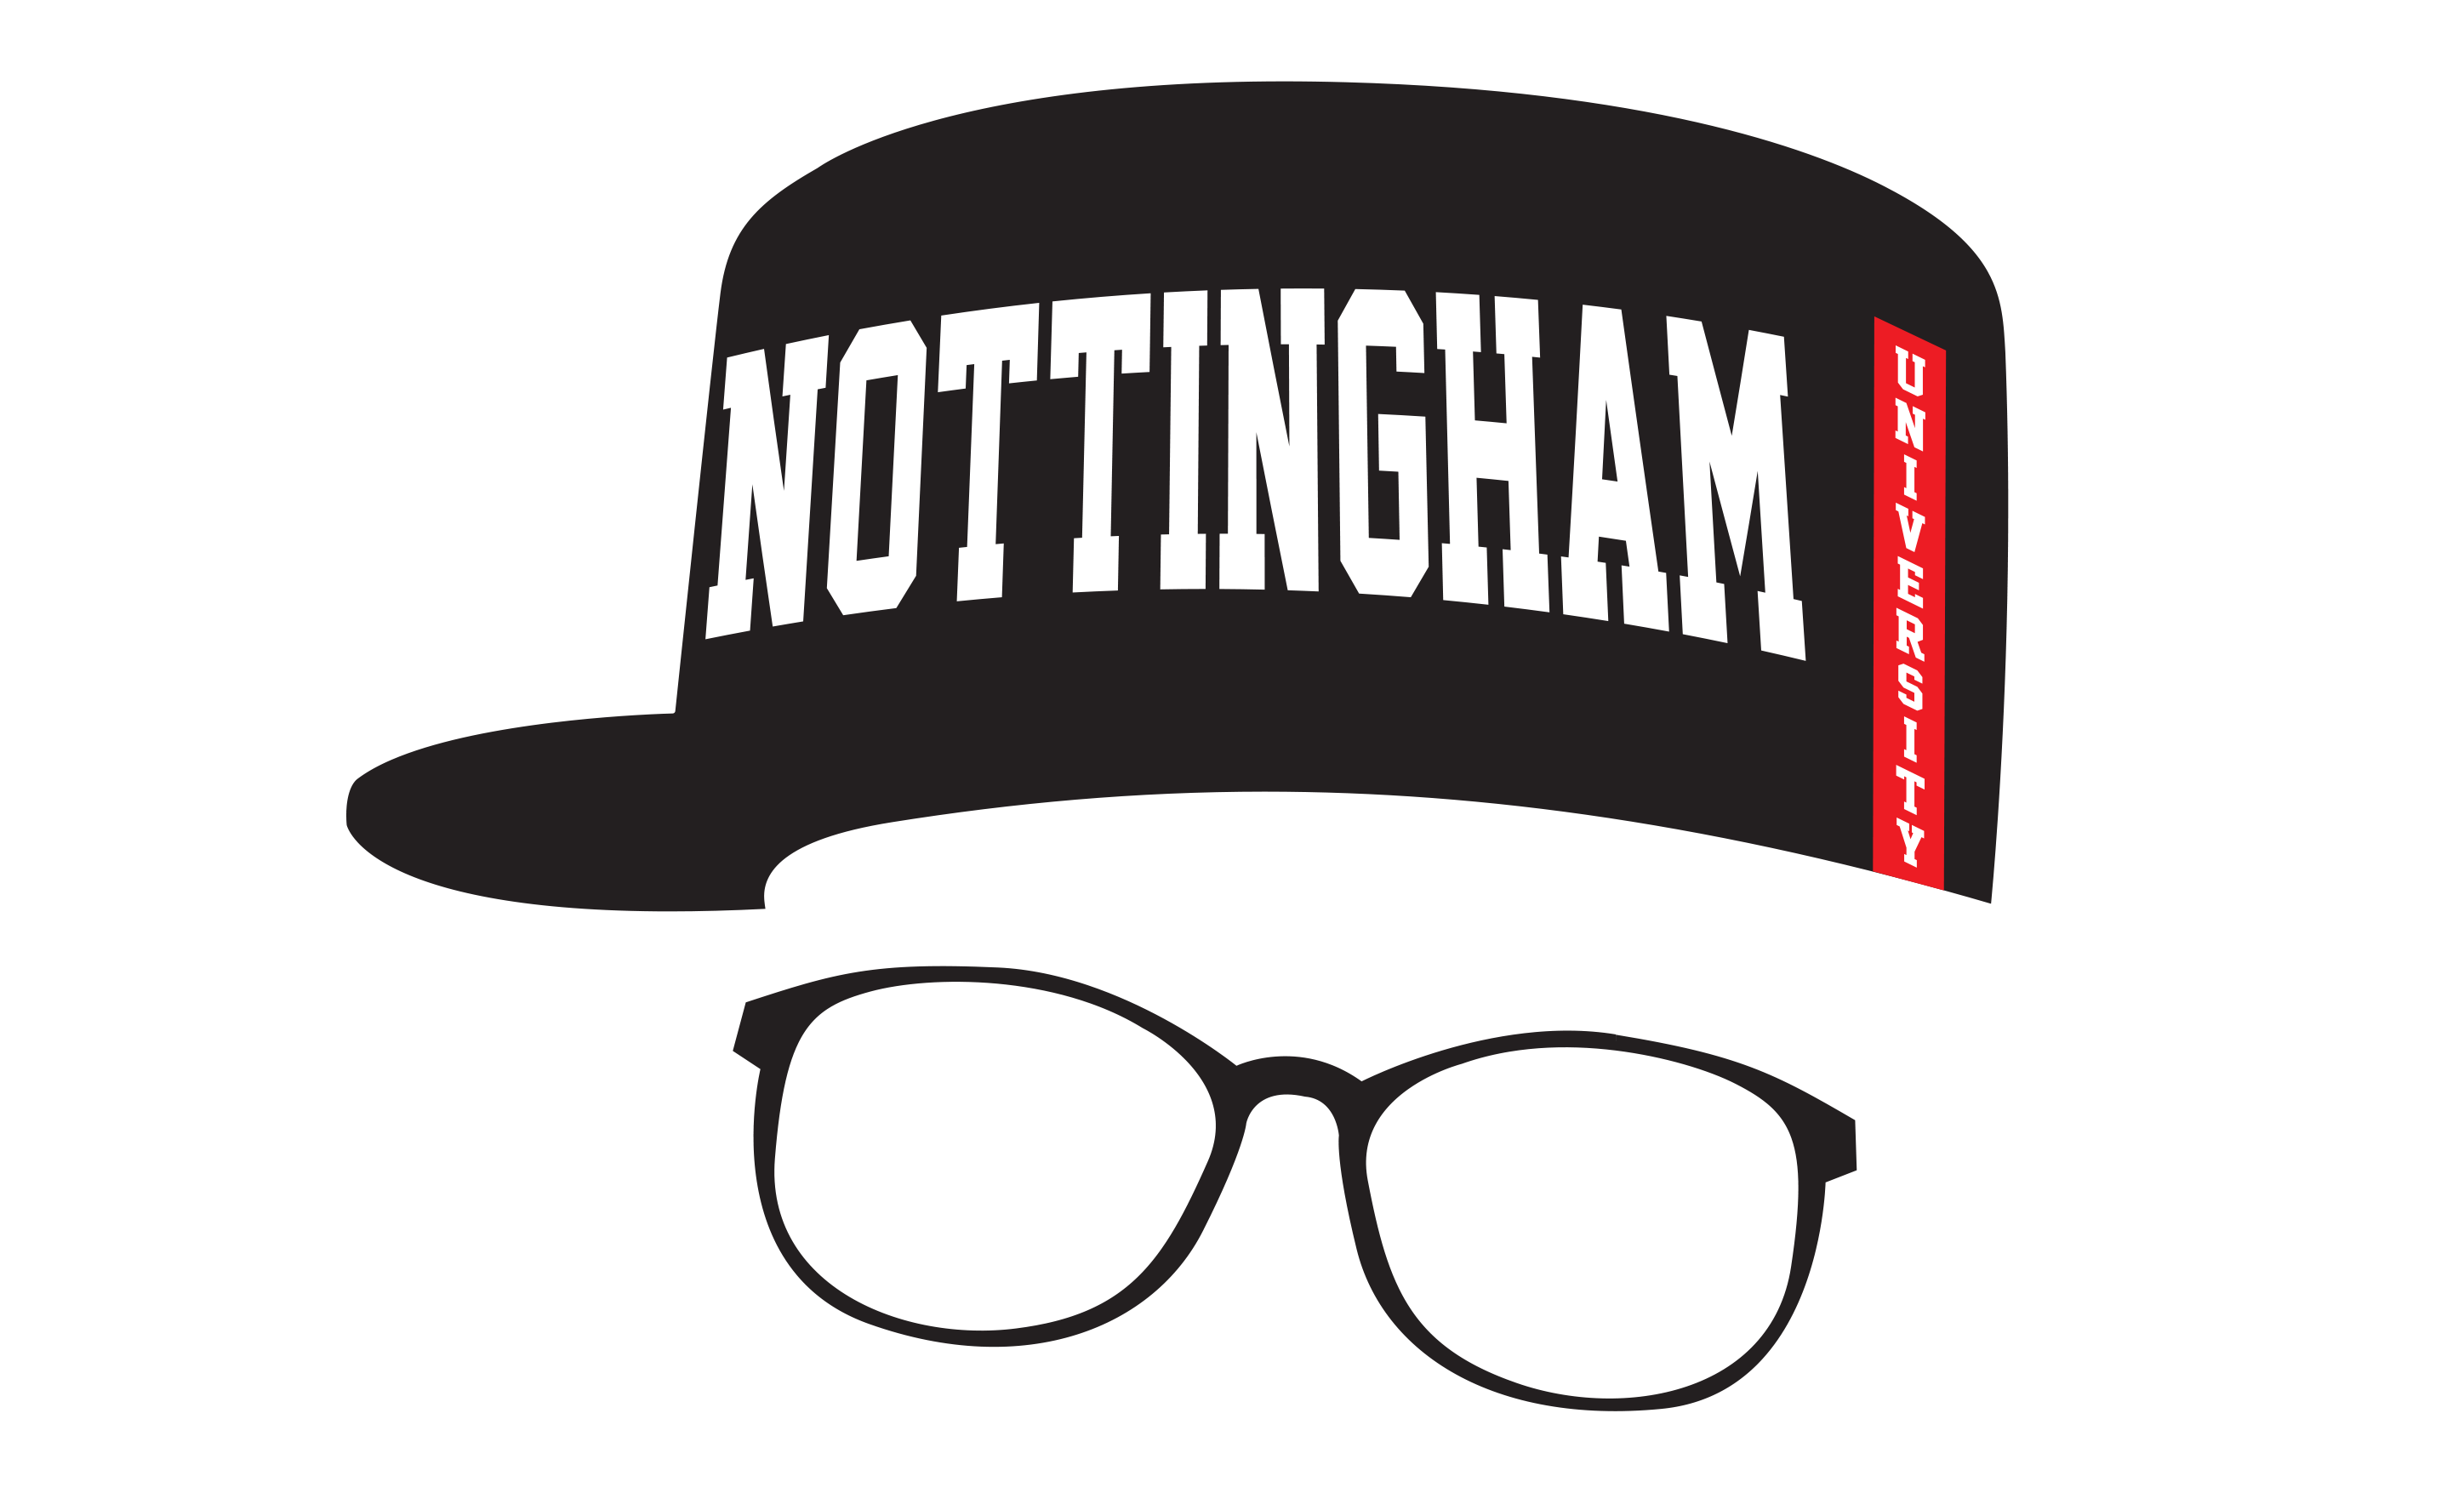 Nottingham Design 3009